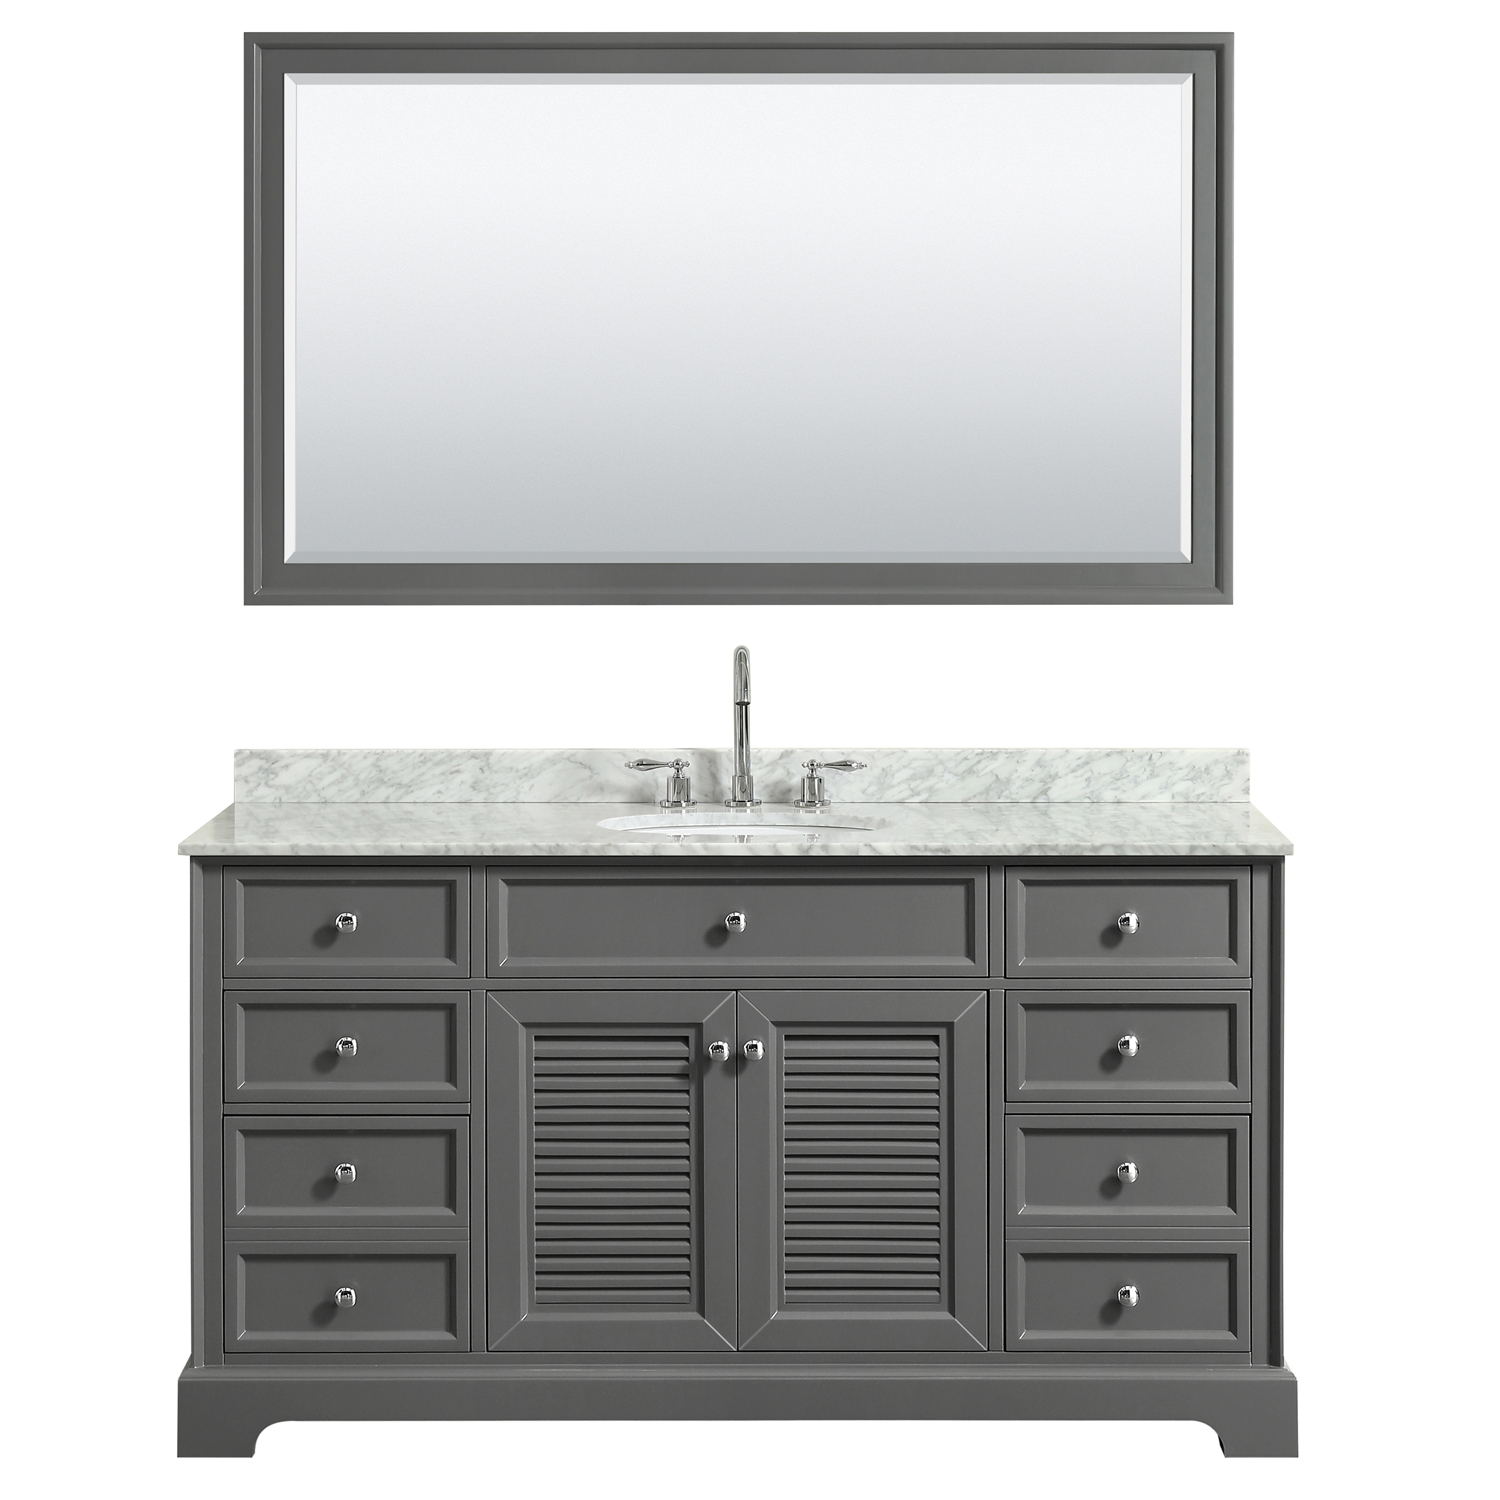 "60"" Single Bathroom Vanity in White Carrara Marble Countertop with Undermount Sink, Mirror and Color Options"